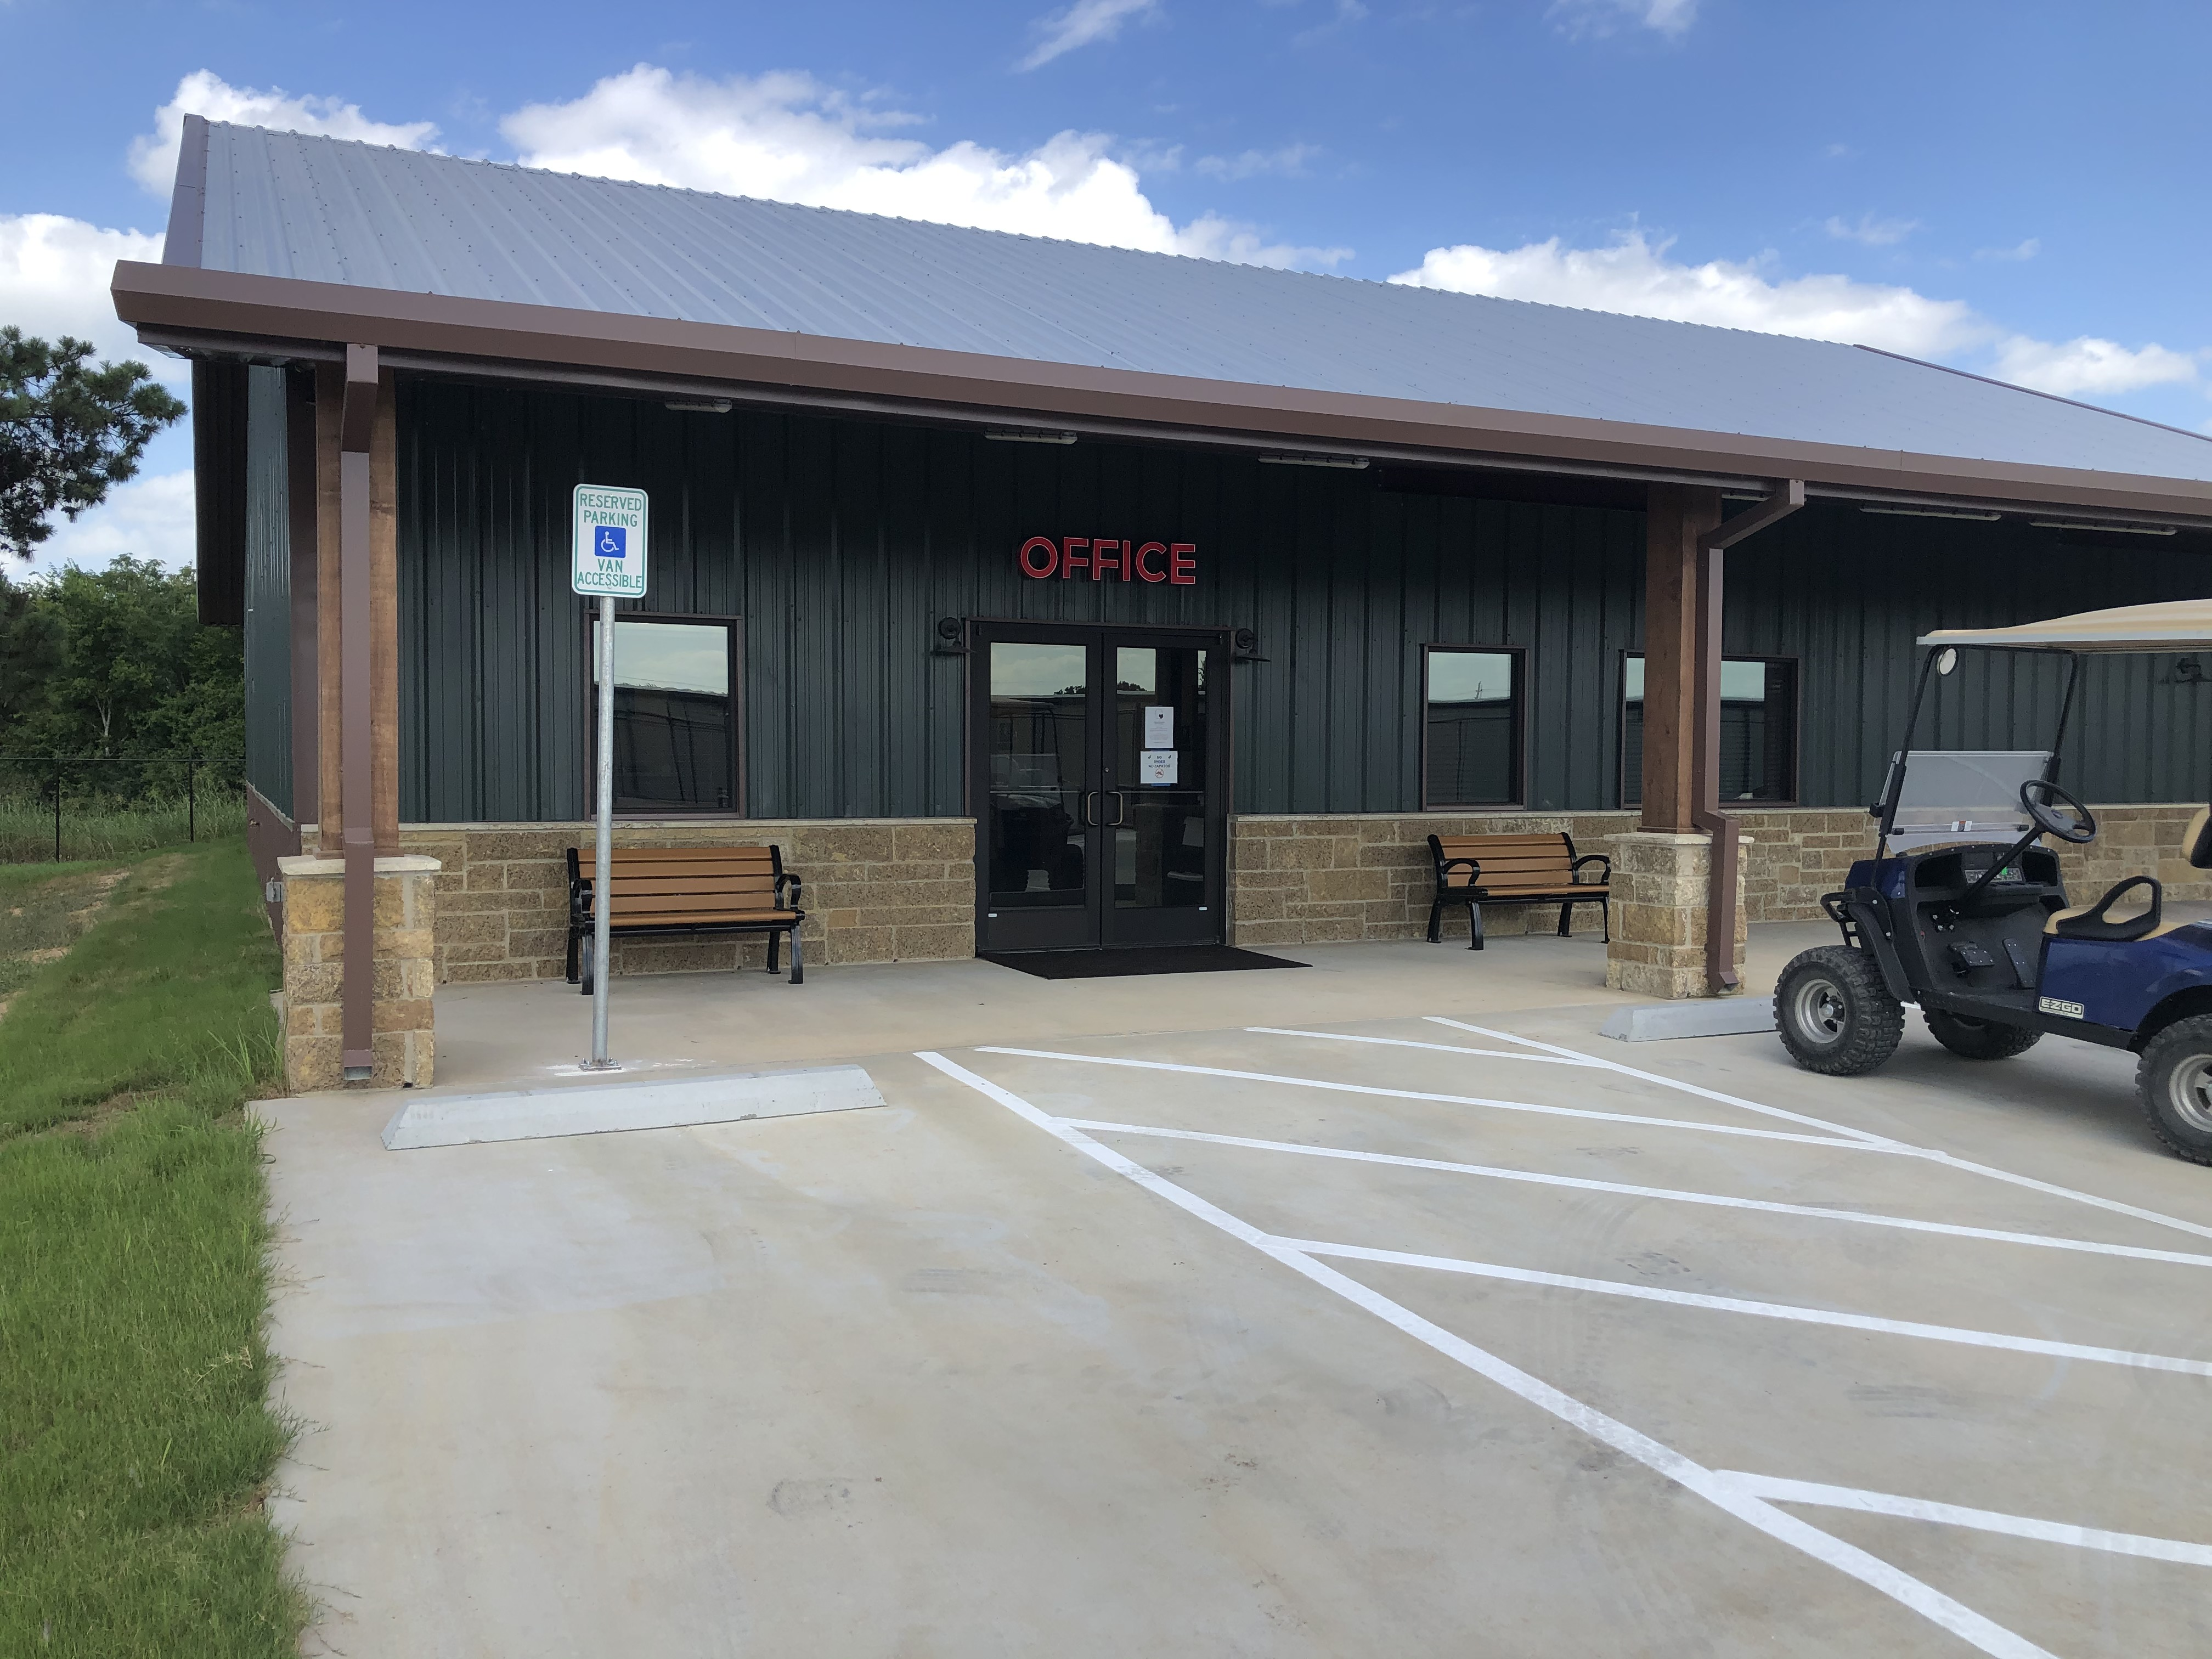 Friendly office staff available to assist you at Kathy's Kampground in Sealy, TX